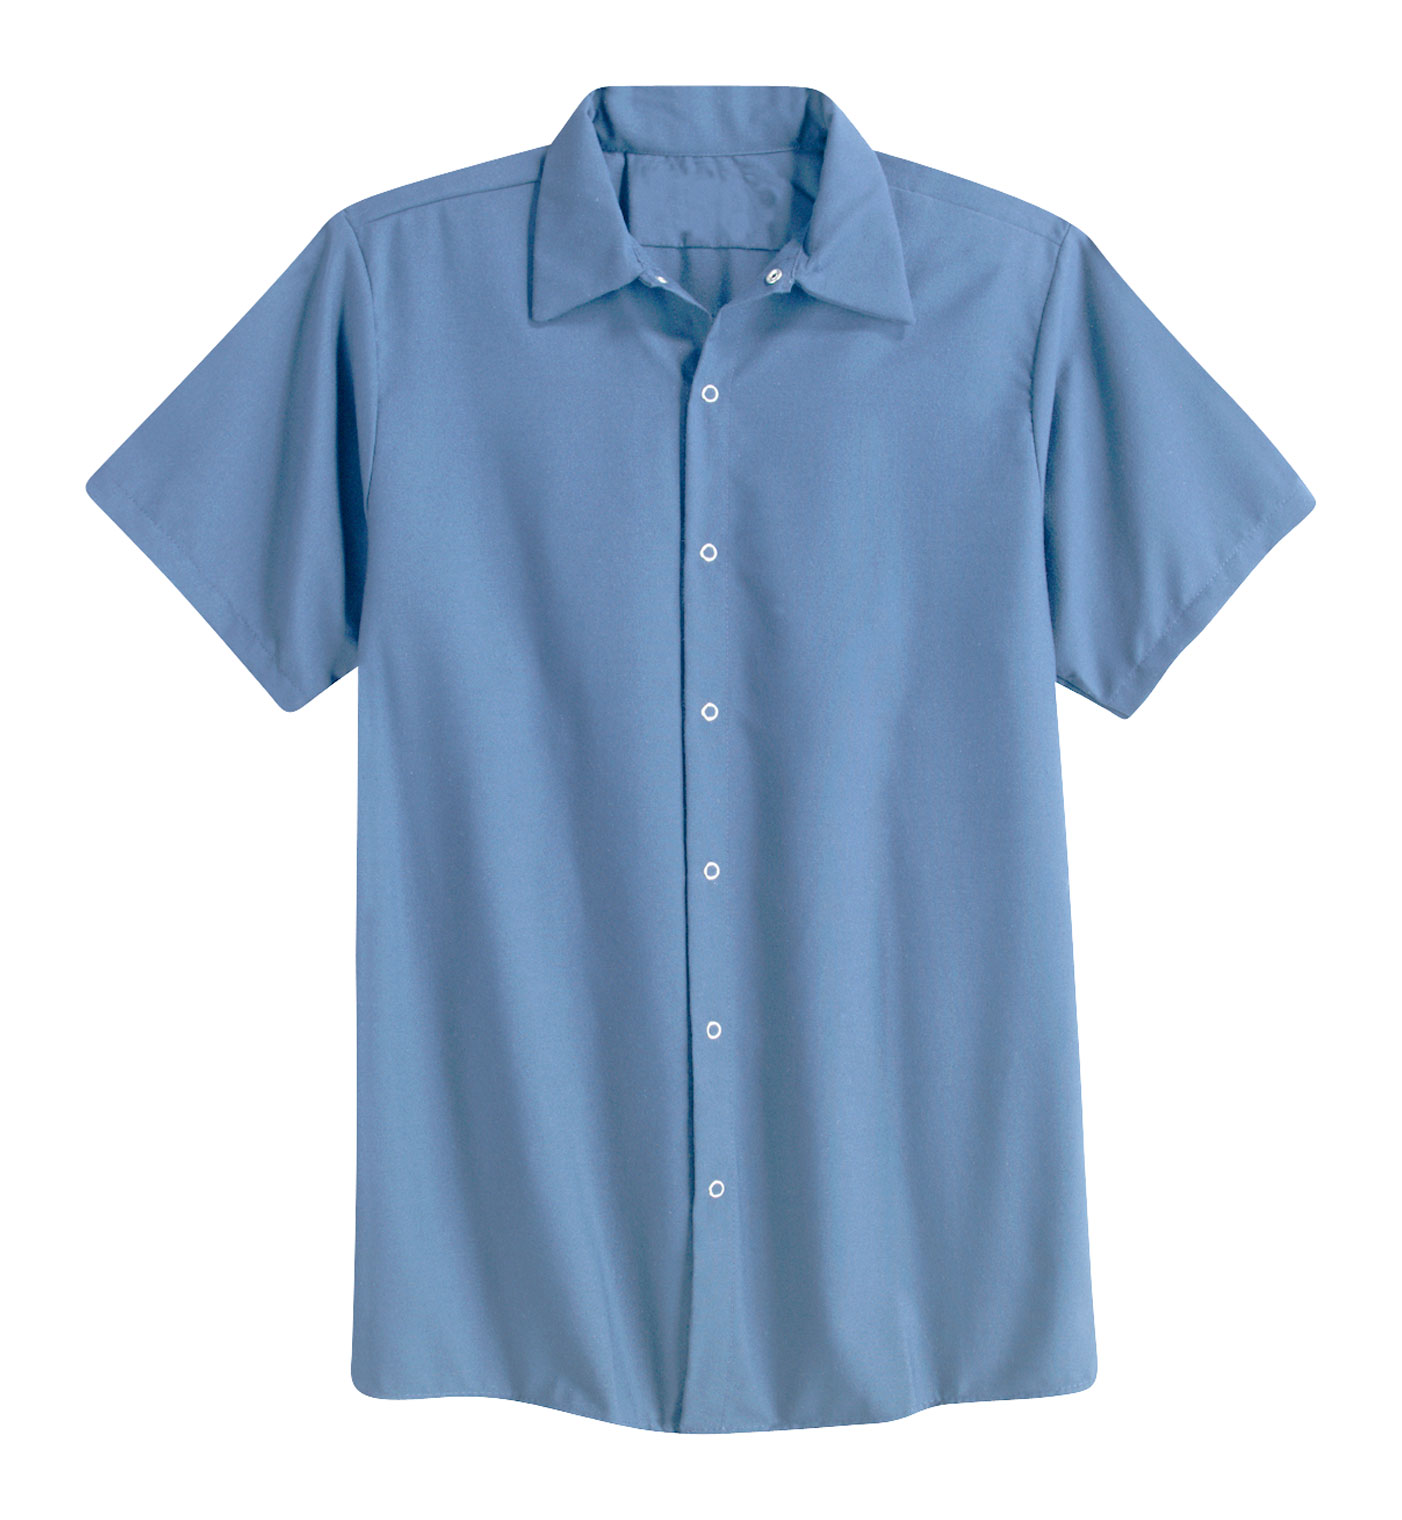 fdb59cda15 Aramark Mens Pocketless Snap-Front Shirt